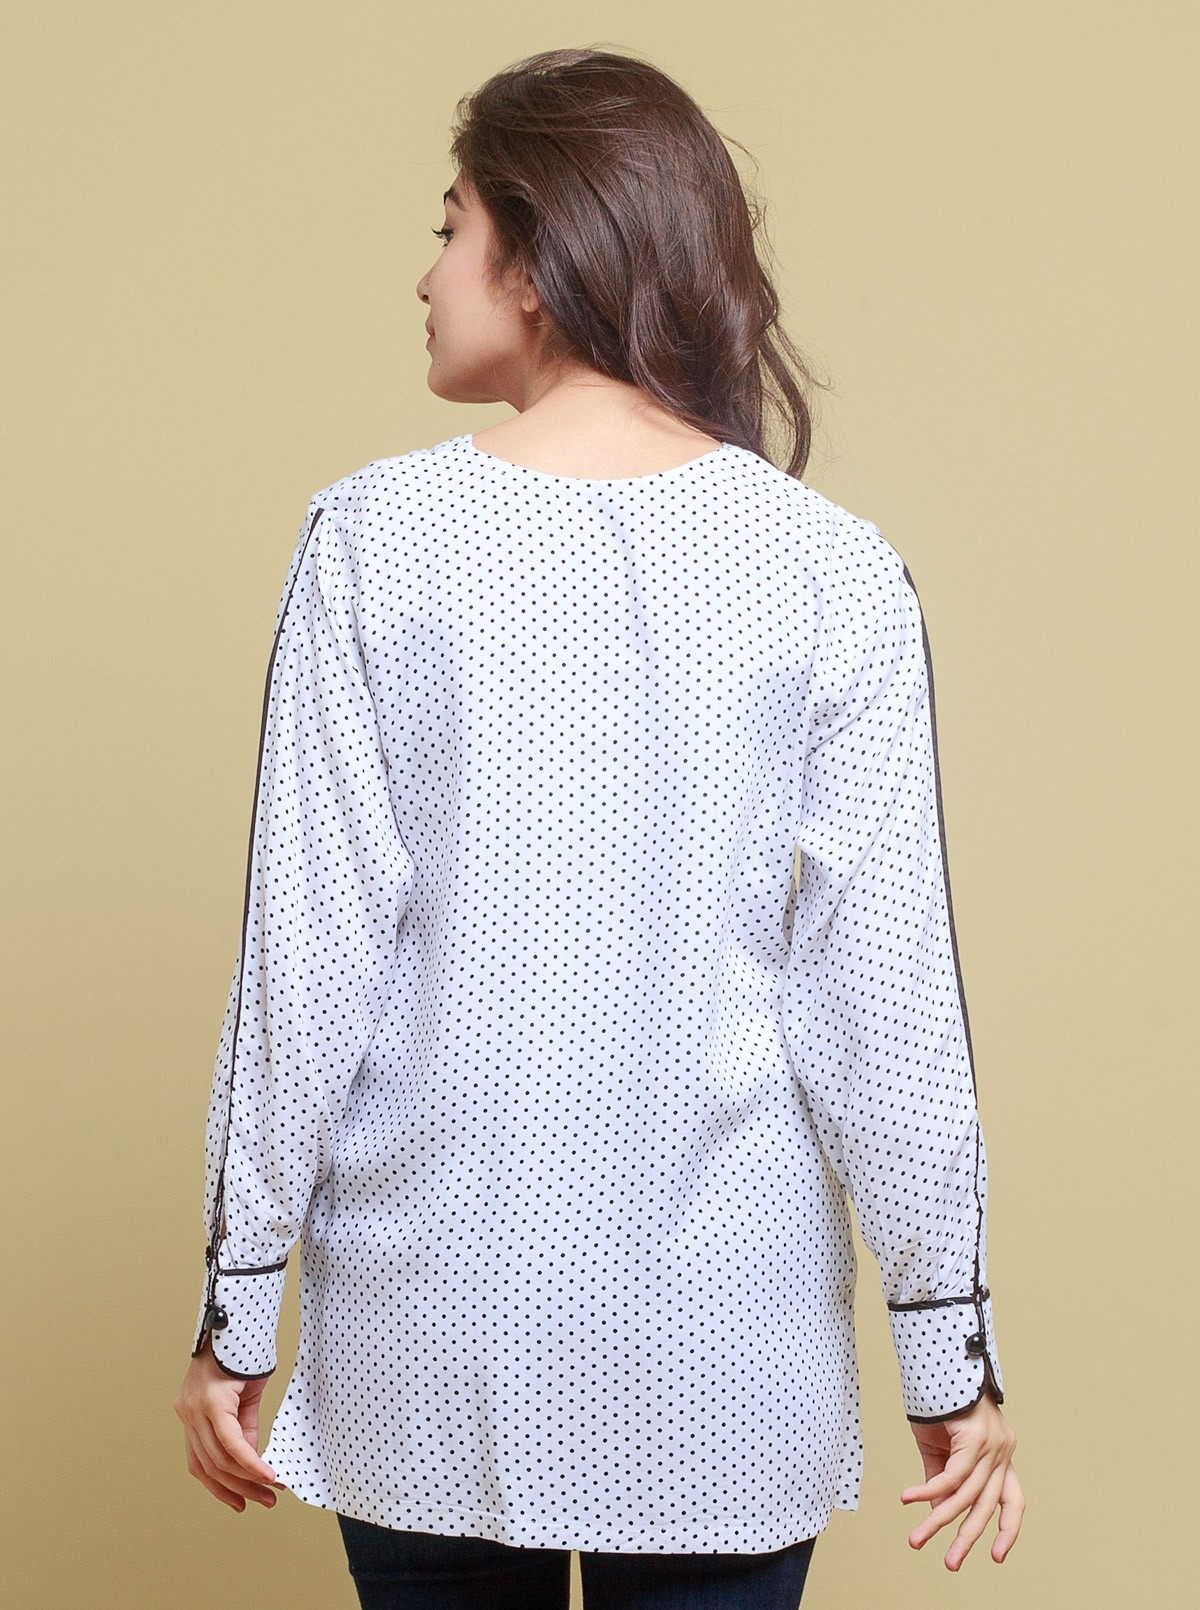 /2019/05/beechtree-absolute-collection-silk-top-bts18-m-abs-441-white-image2.jpeg